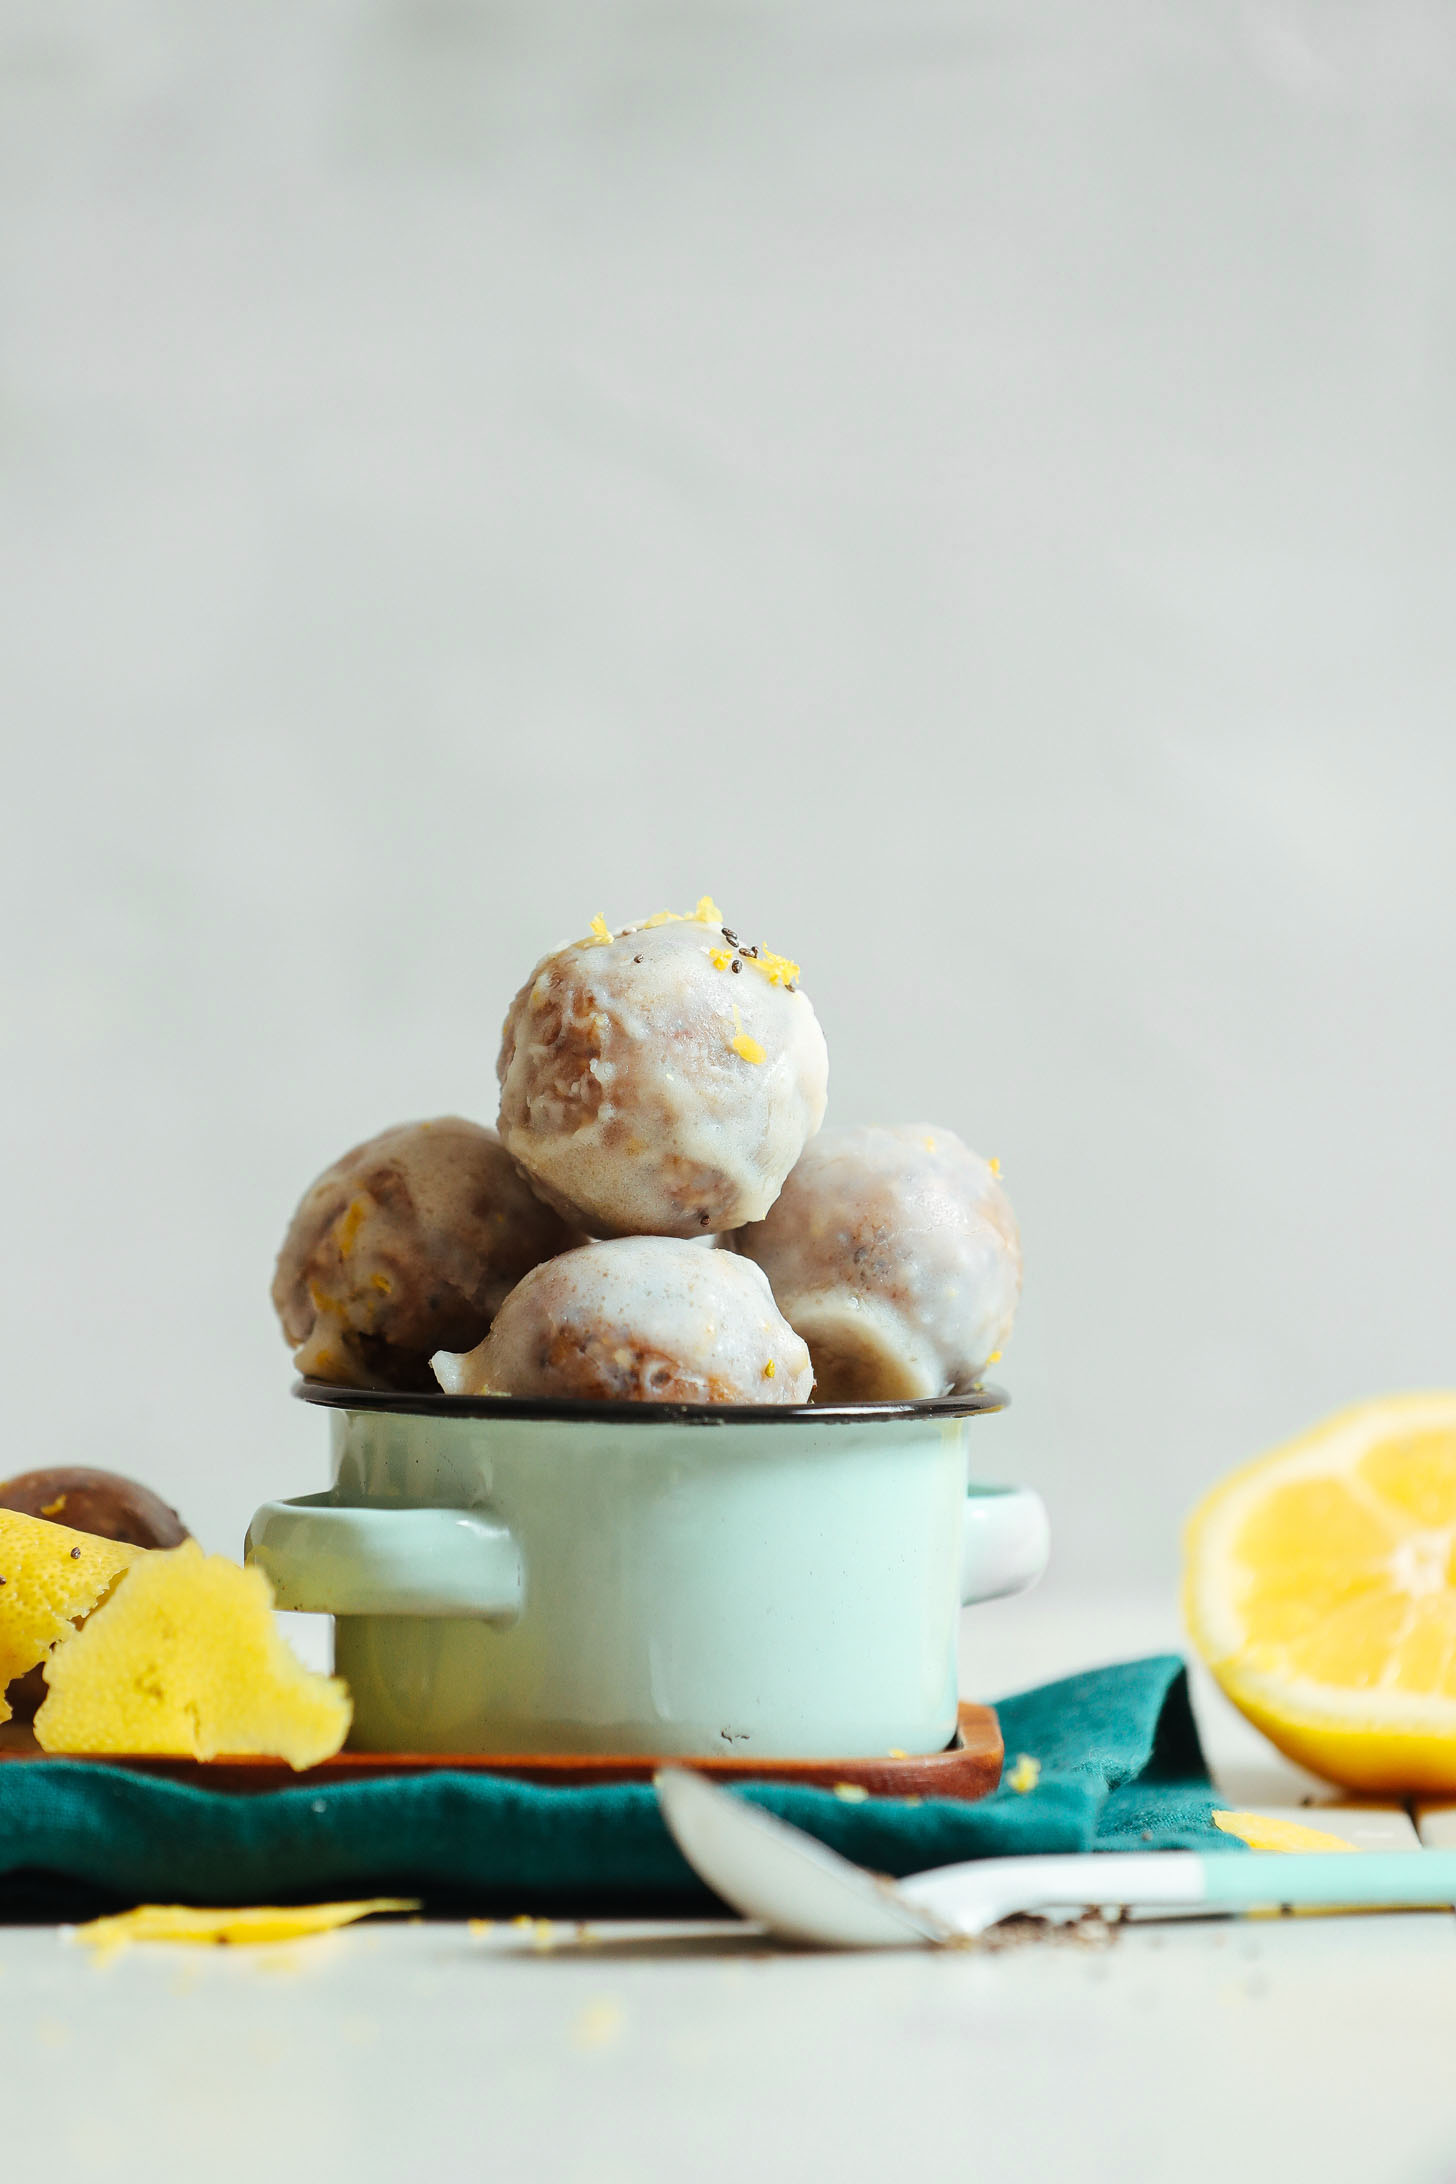 A small blue bowl with no bake vegan donut holes that are scented with lemon zest, lemon juice, and poppy seeds.